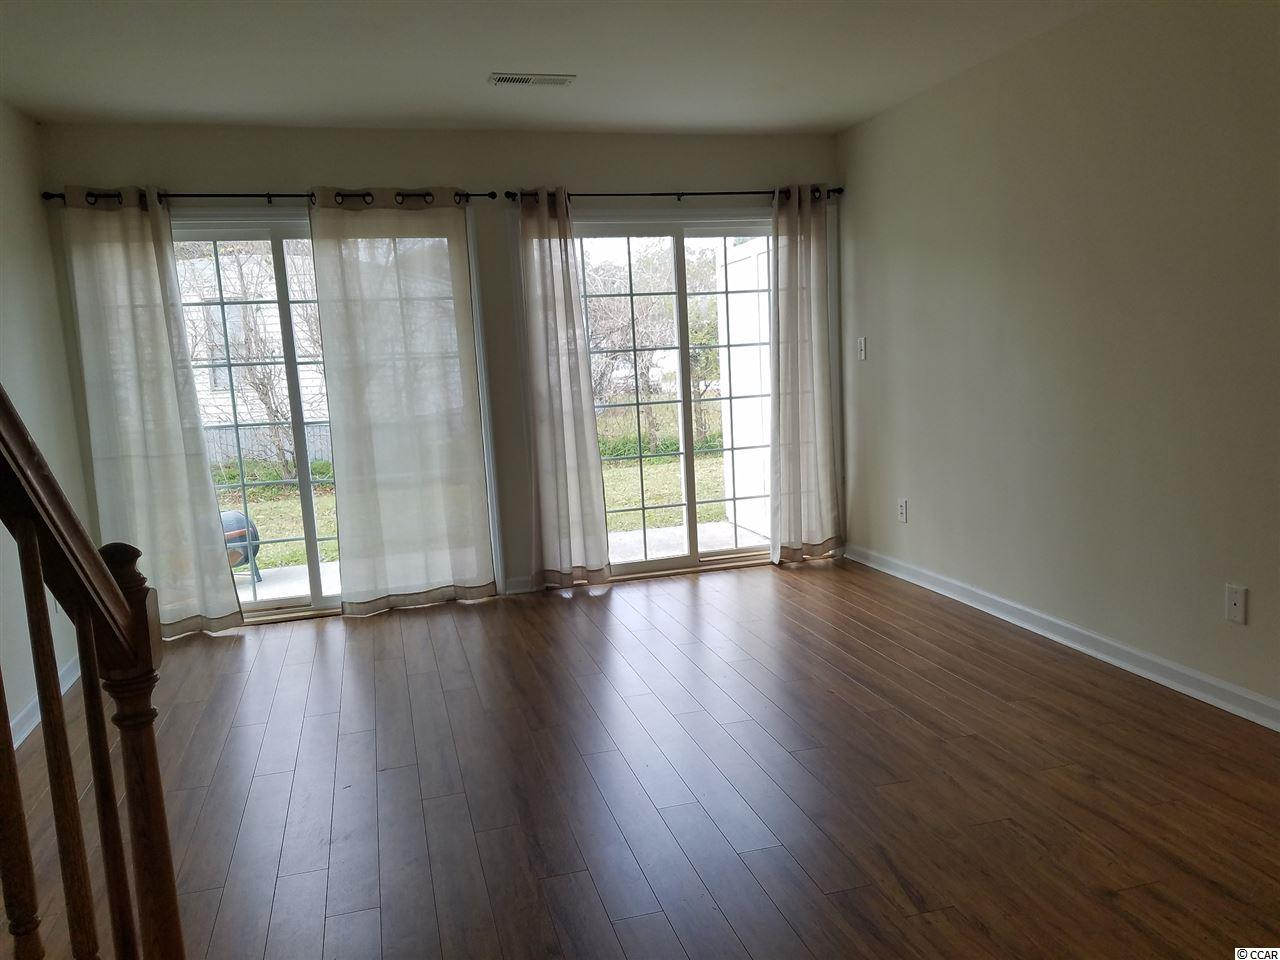 PINEGROVE condo for sale in Myrtle Beach, SC